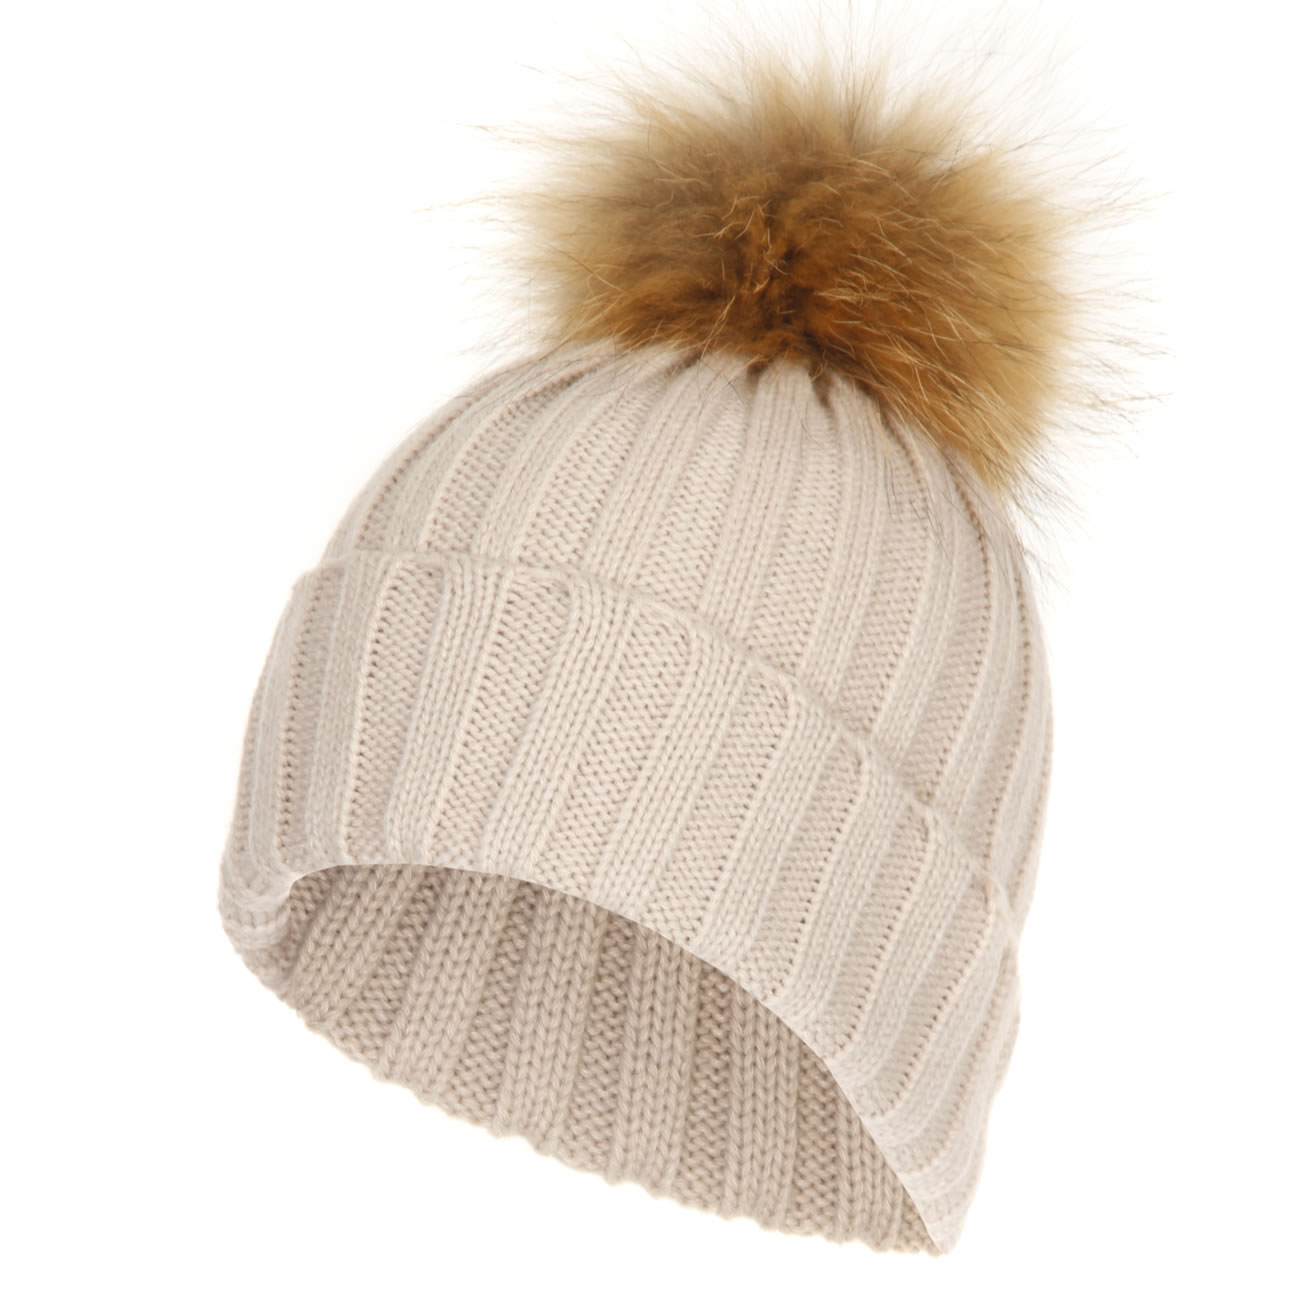 Frimble-Fur-Pom-Pom-hat-Oat.jpg